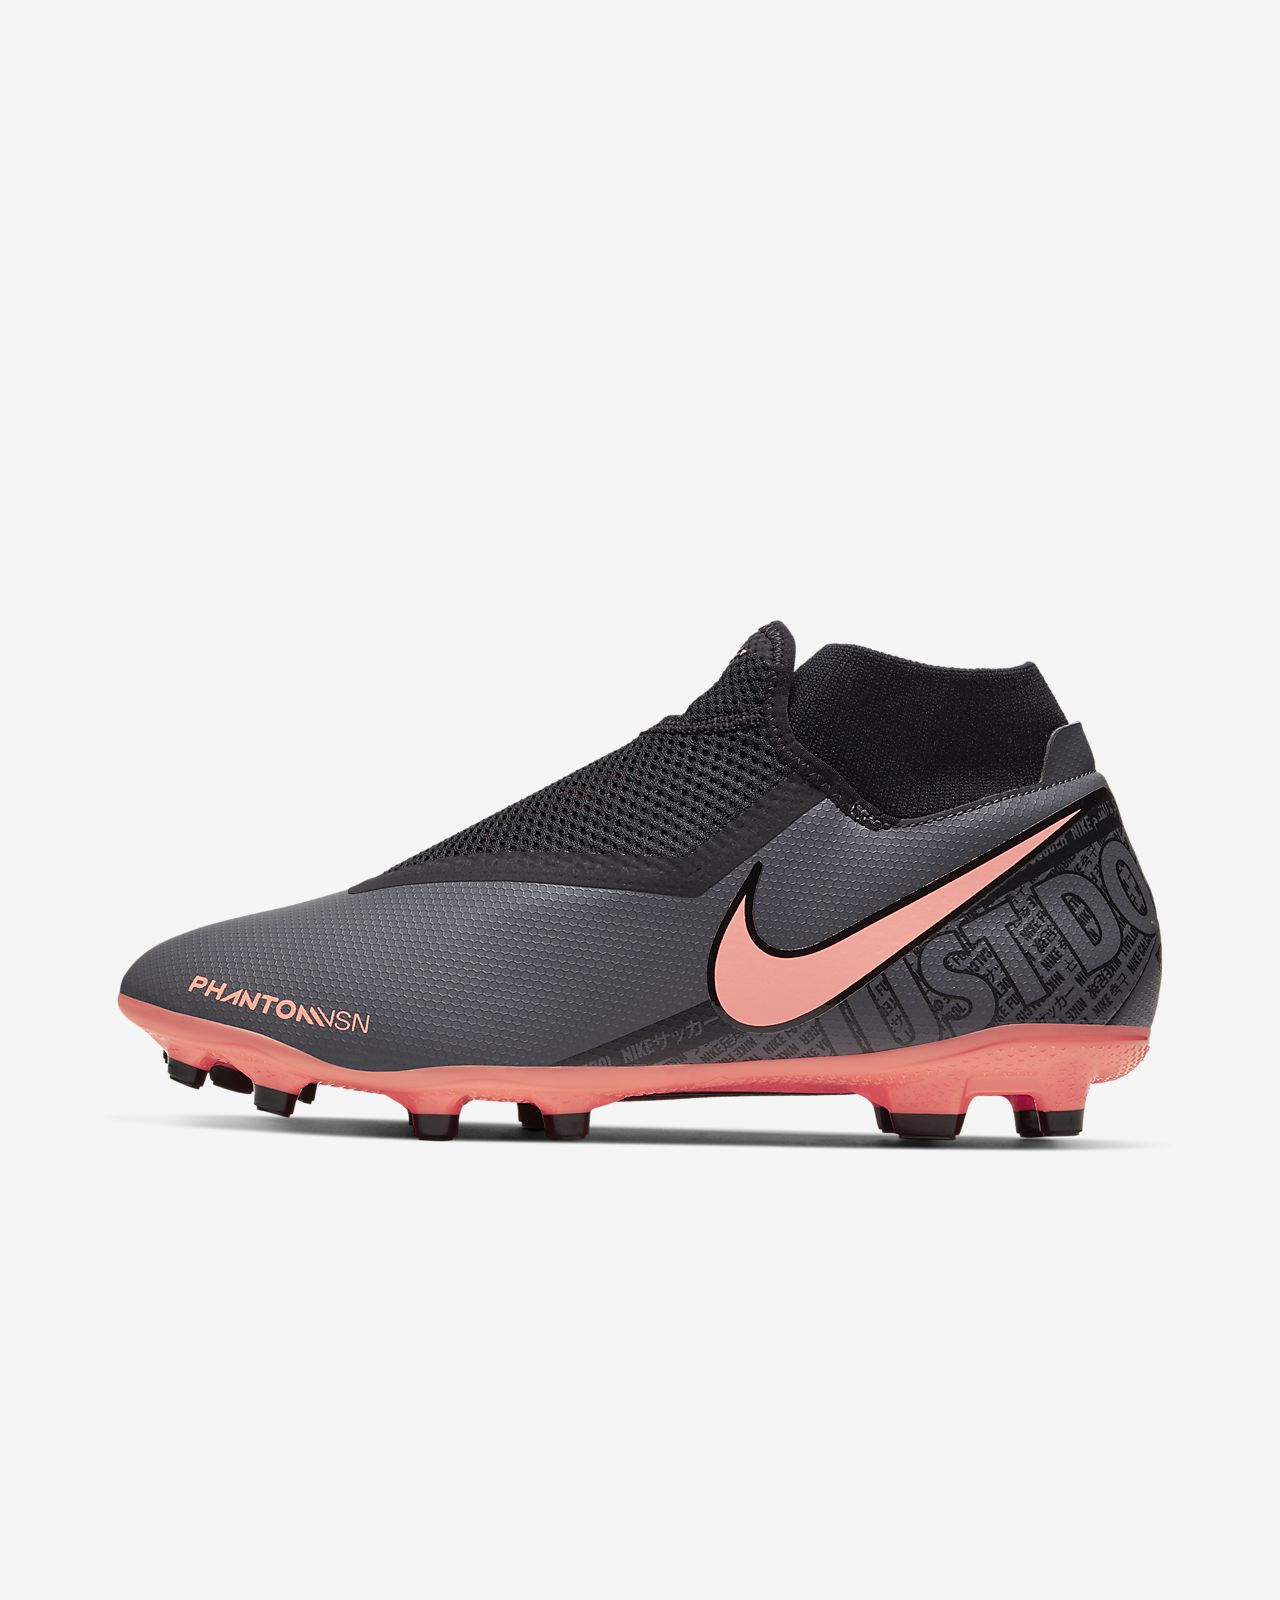 Exclusivo Nike Phantom Vision Academy Dynamic Fit Botas de